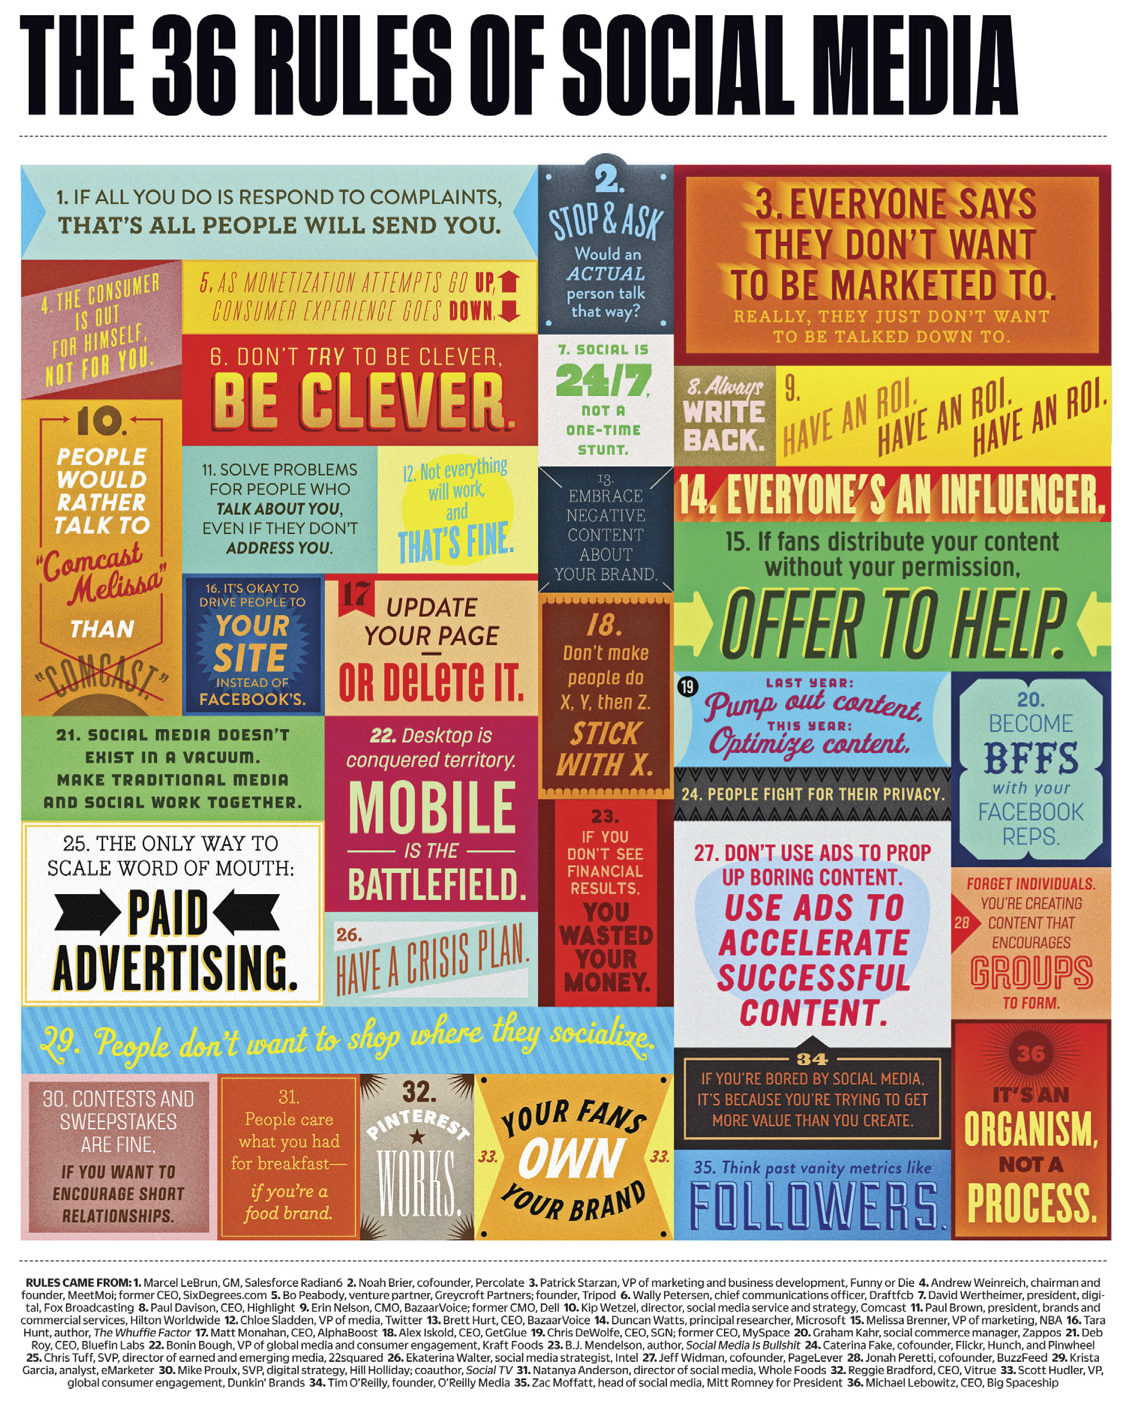 The 36 Social Media Rules